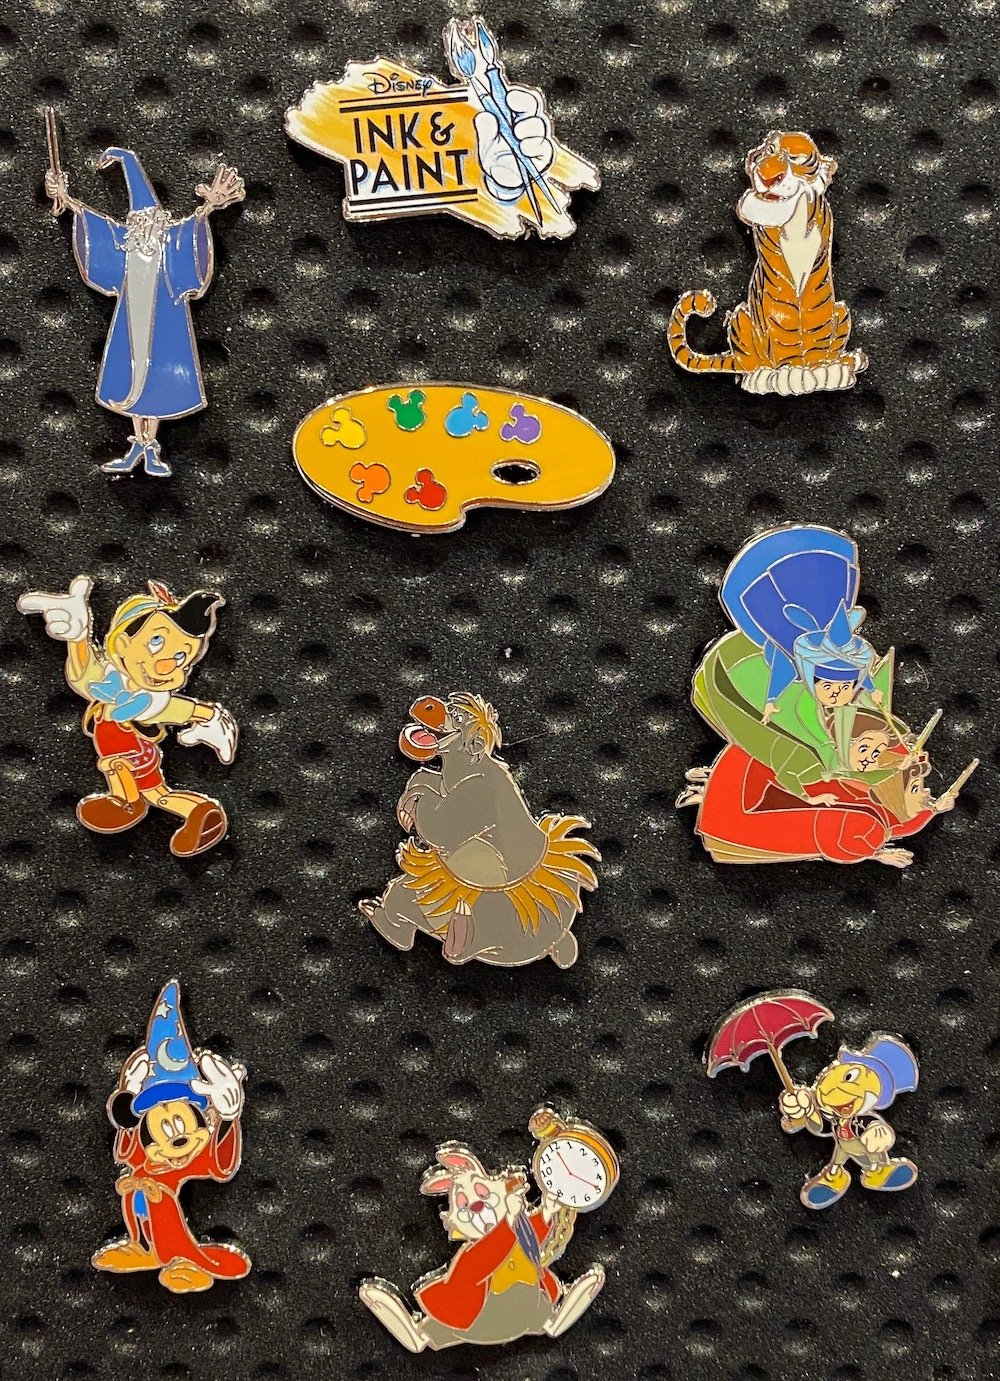 Ink & Paint Mystery Disney Pins